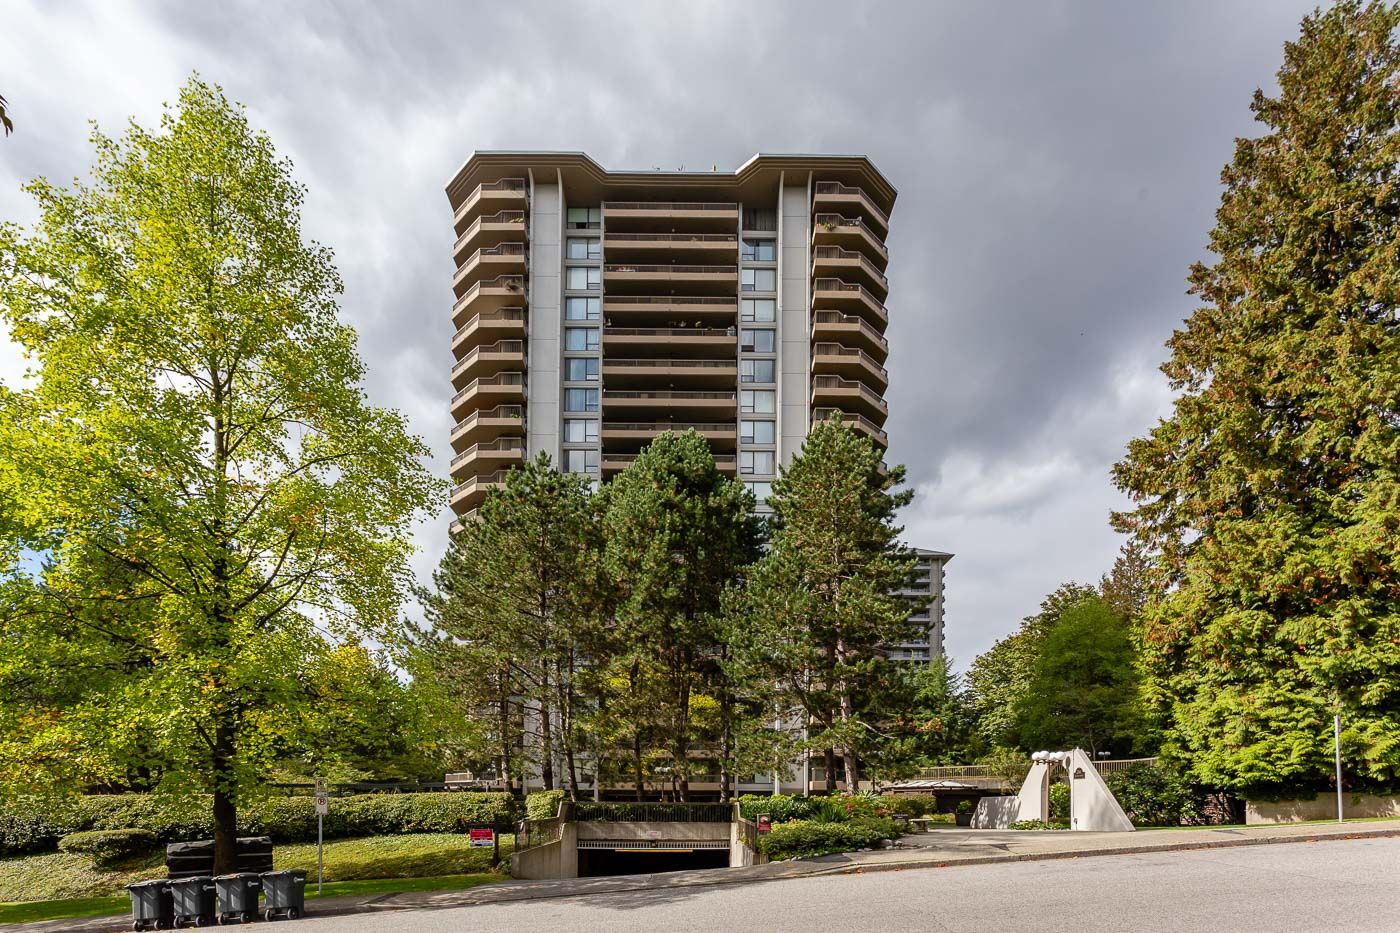 """Main Photo: # 501 -  2041 BELLWOOD AVENUE in Burnaby: Brentwood Park Condo for sale in """"ANOLA PLACE"""" (Burnaby North)  : MLS®# R2308954"""